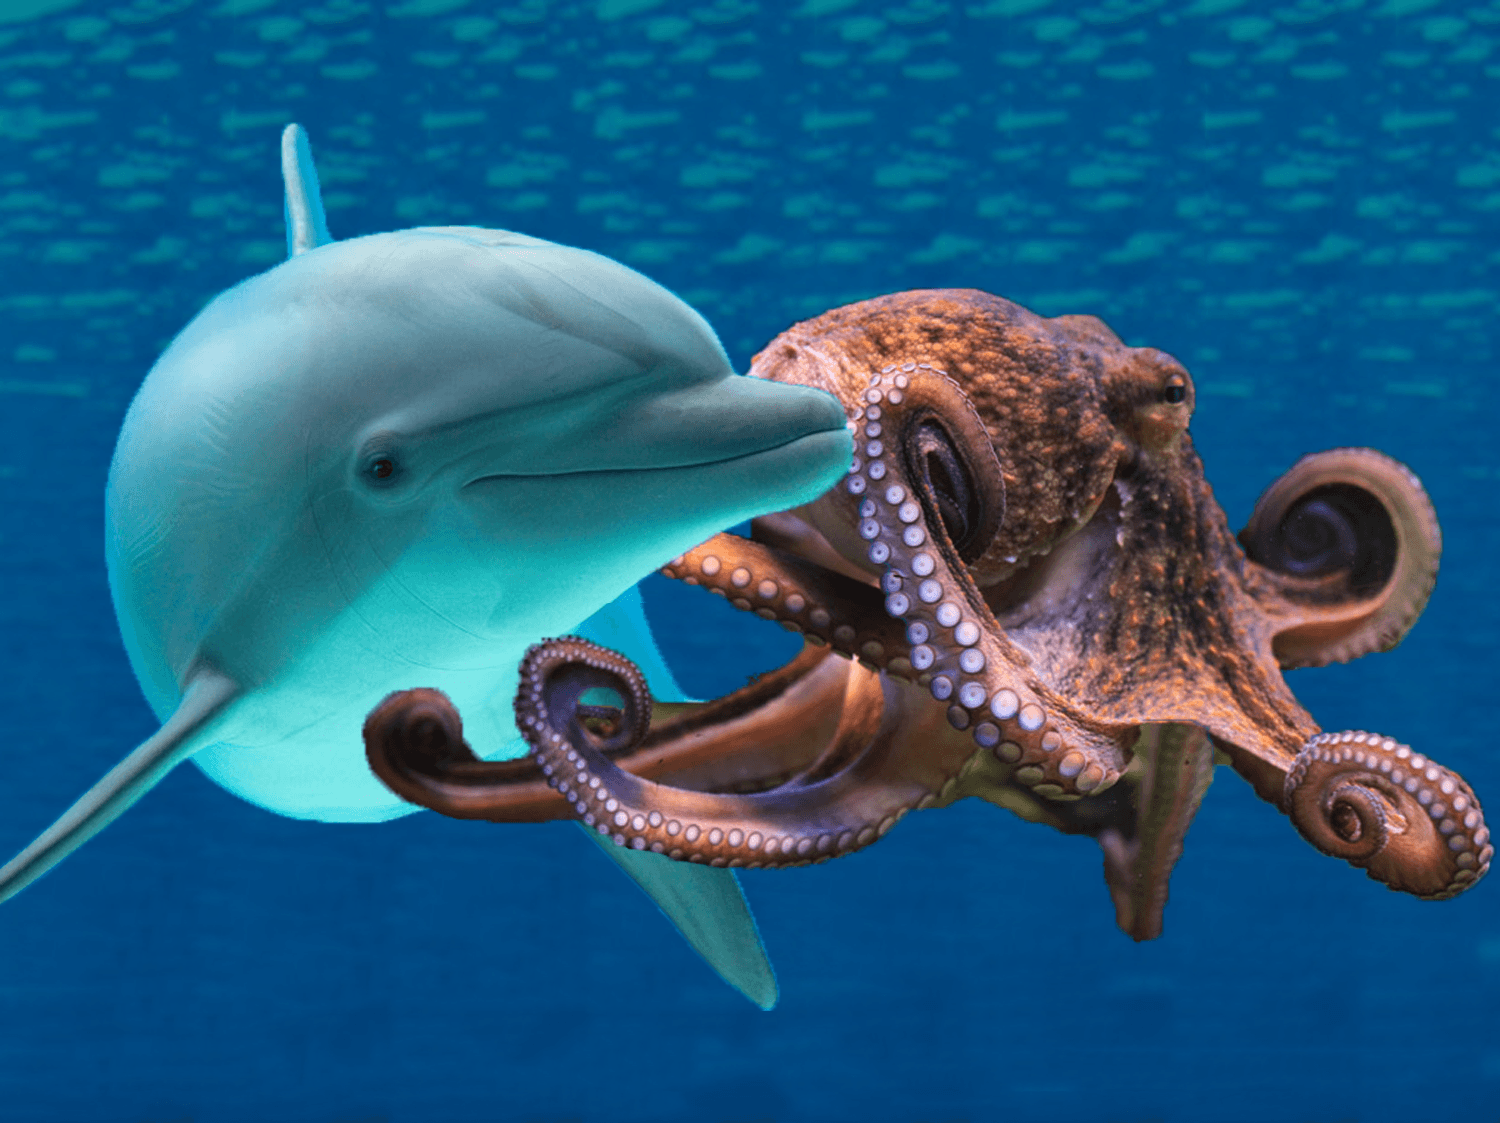 Which are cooler? Dolphins or octopuses